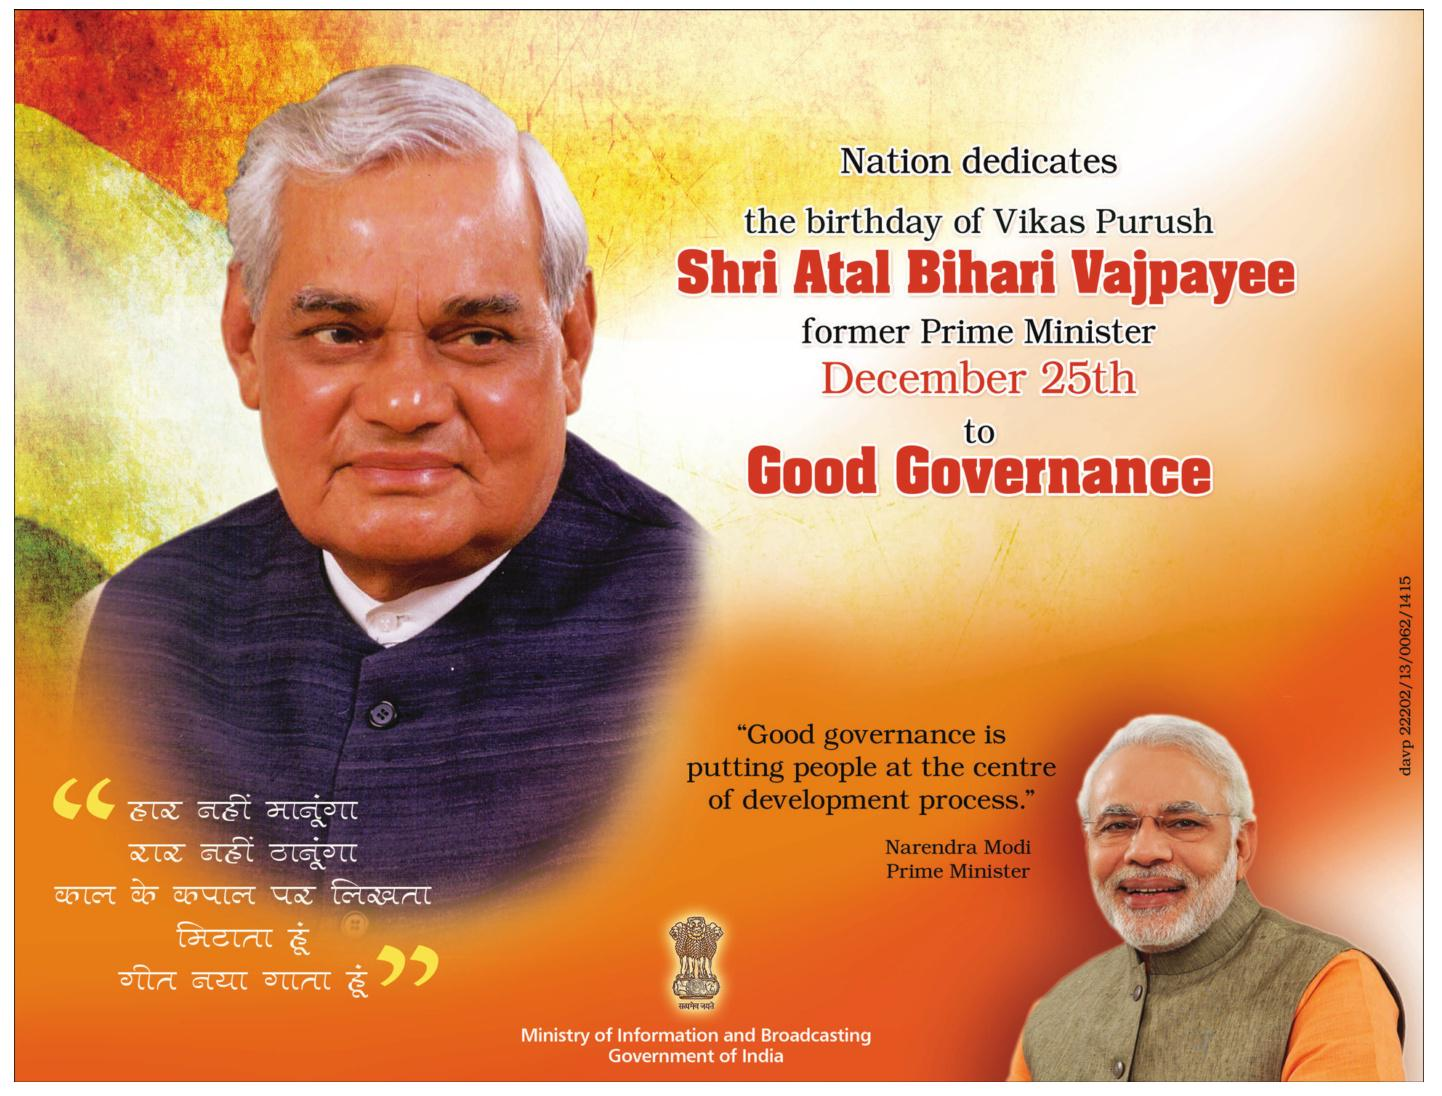 essay atal bihari vajpayee Atal bihari vajpayee [pronunciation] (born 25 december 1924) is an indian politician who was the 10th prime minister of india, first term for 13 days in 1996 and.